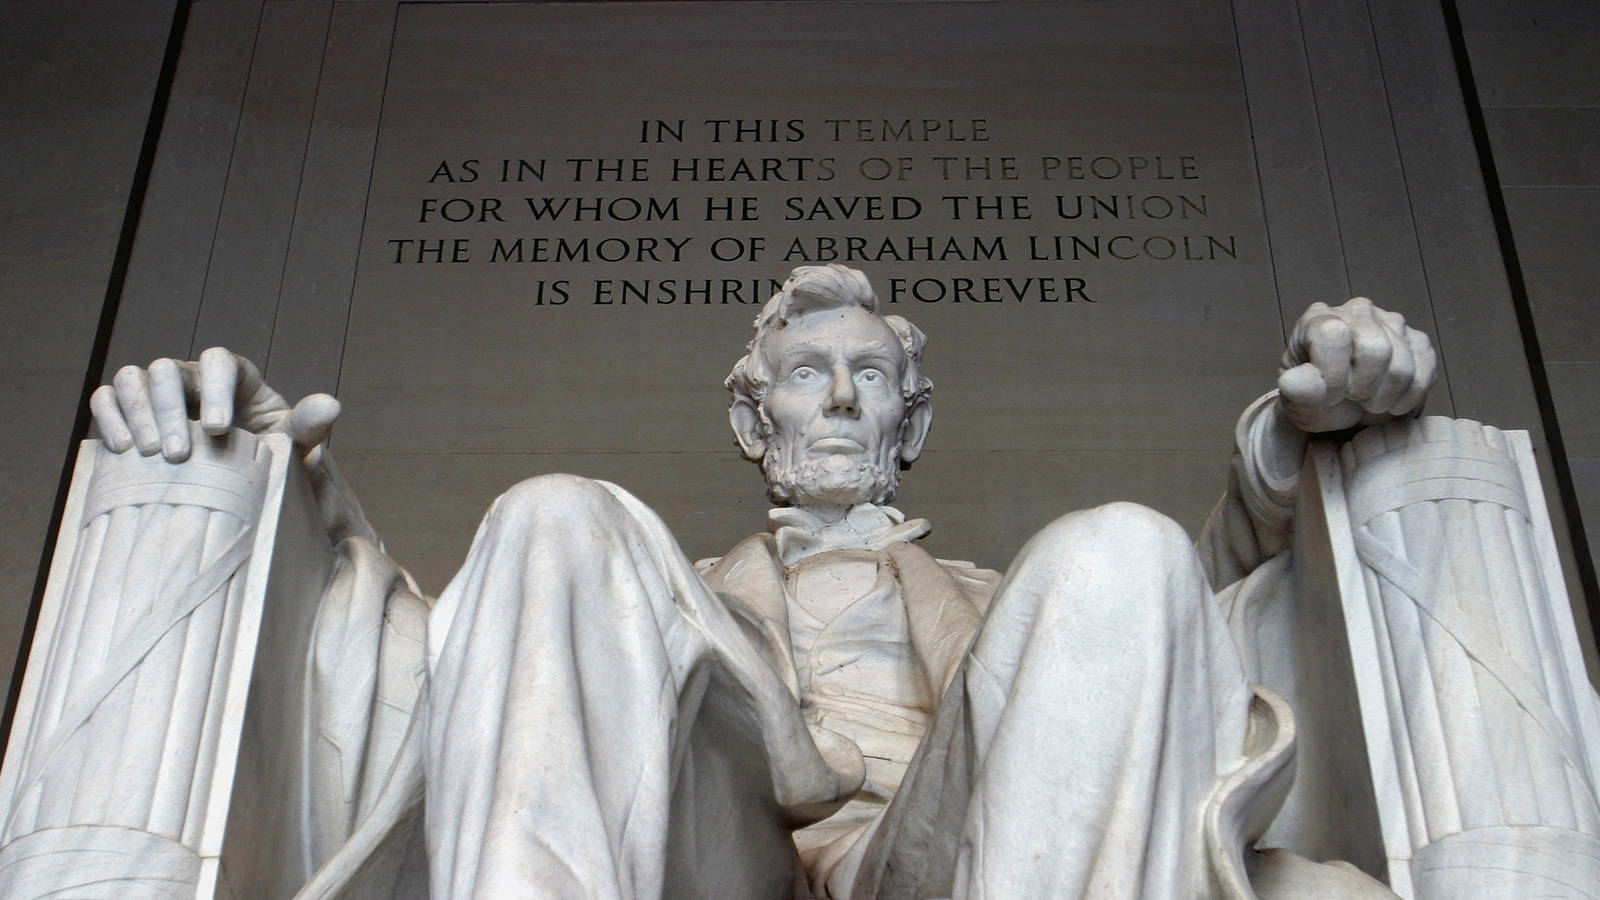 Photo of the Lincoln Memorial. The Lincoln Memorial is an American national monument built to honor the 16th President of the United States, Abraham Lincoln. It is located on the western end of the National Mall in Washington, D.C., across from the Washington Monument. The architect was Henry Bacon; the designer of the primary statue – Abraham Lincoln, 1920 – was Daniel Chester French; the Lincoln statue was carved by the Piccirilli Brothers;[2] and the painter of the interior murals was Jules Guerin. Dedicated in 1922, it is one of several monuments built to honor an American president. It has always been a major tourist attraction and since the 1930s has been a symbolic center focused on race relations.